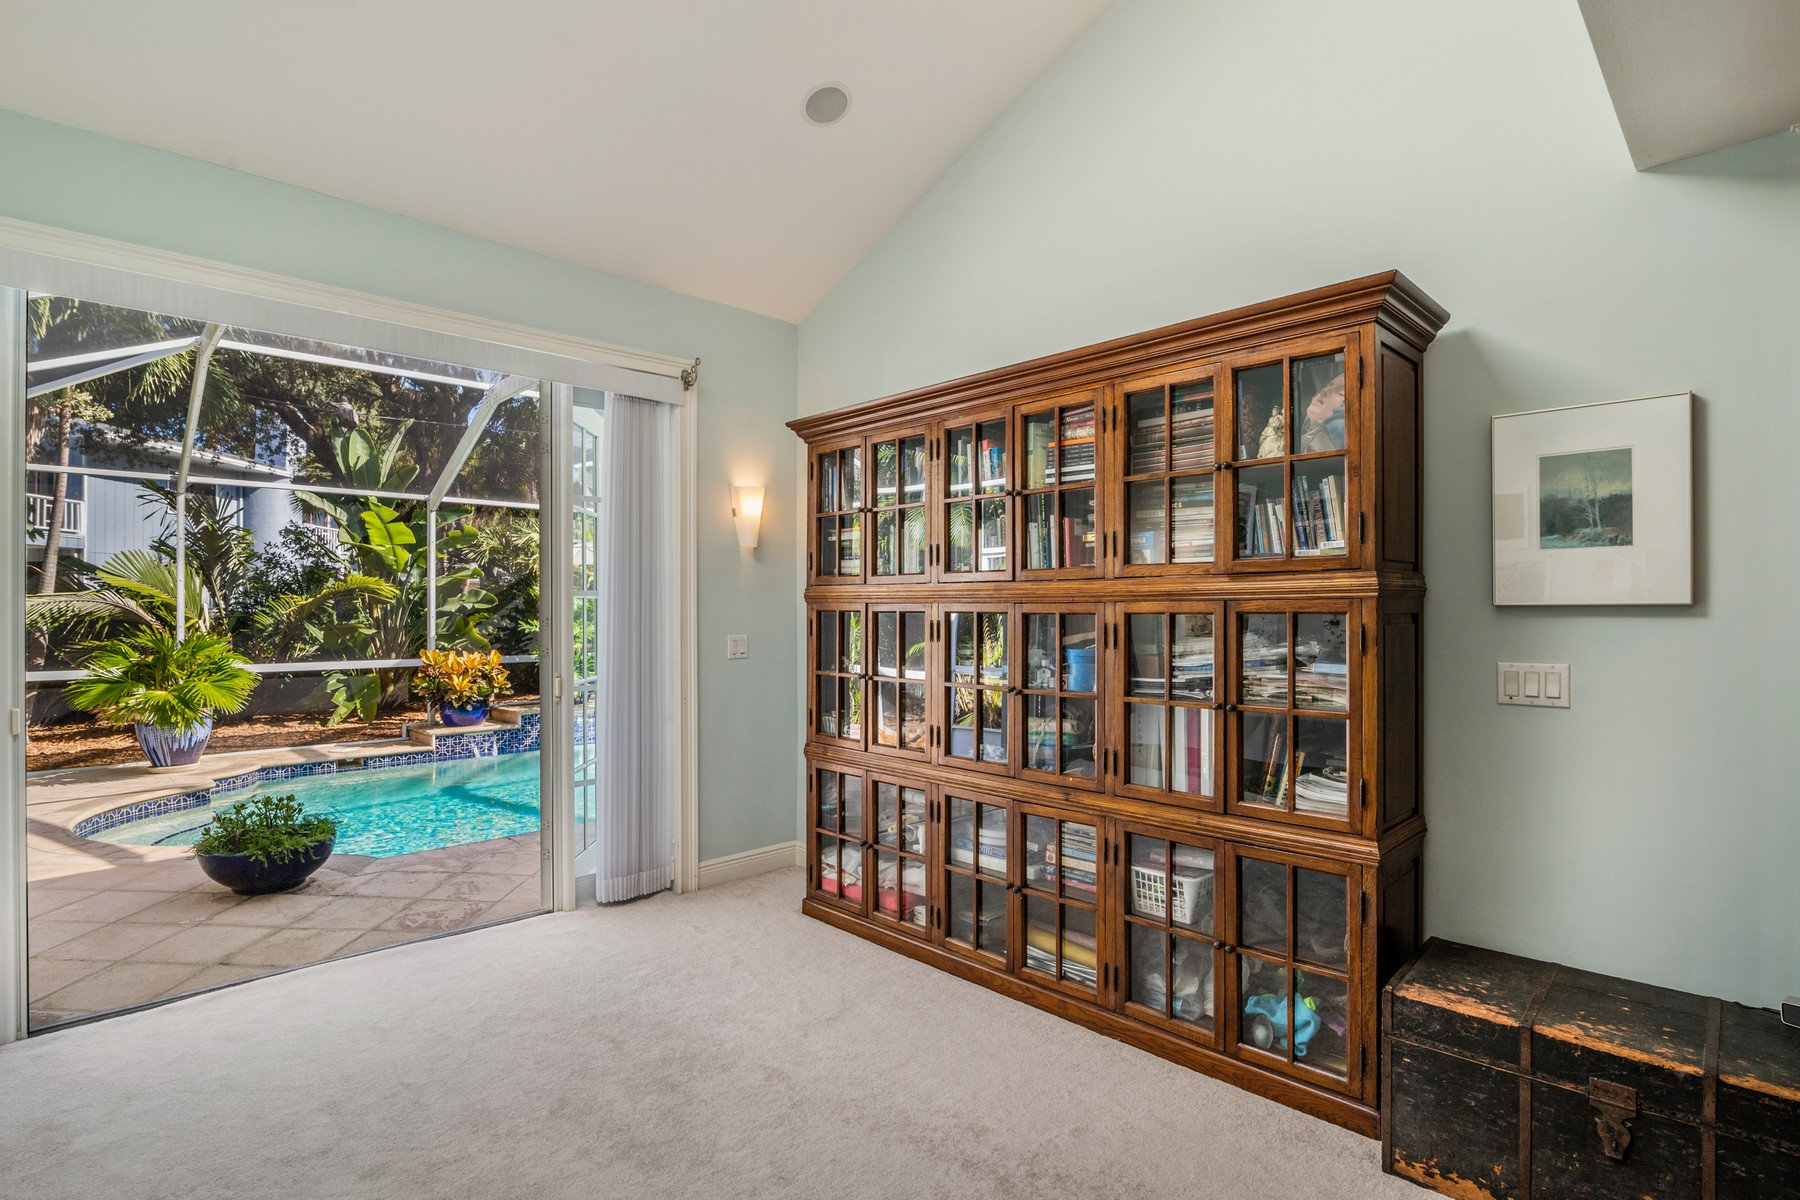 Additional photo for property listing at Gracious Pool Home Steps from the Beach 926 Sunrise Terrace Indian River Shores, Florida 32963 United States